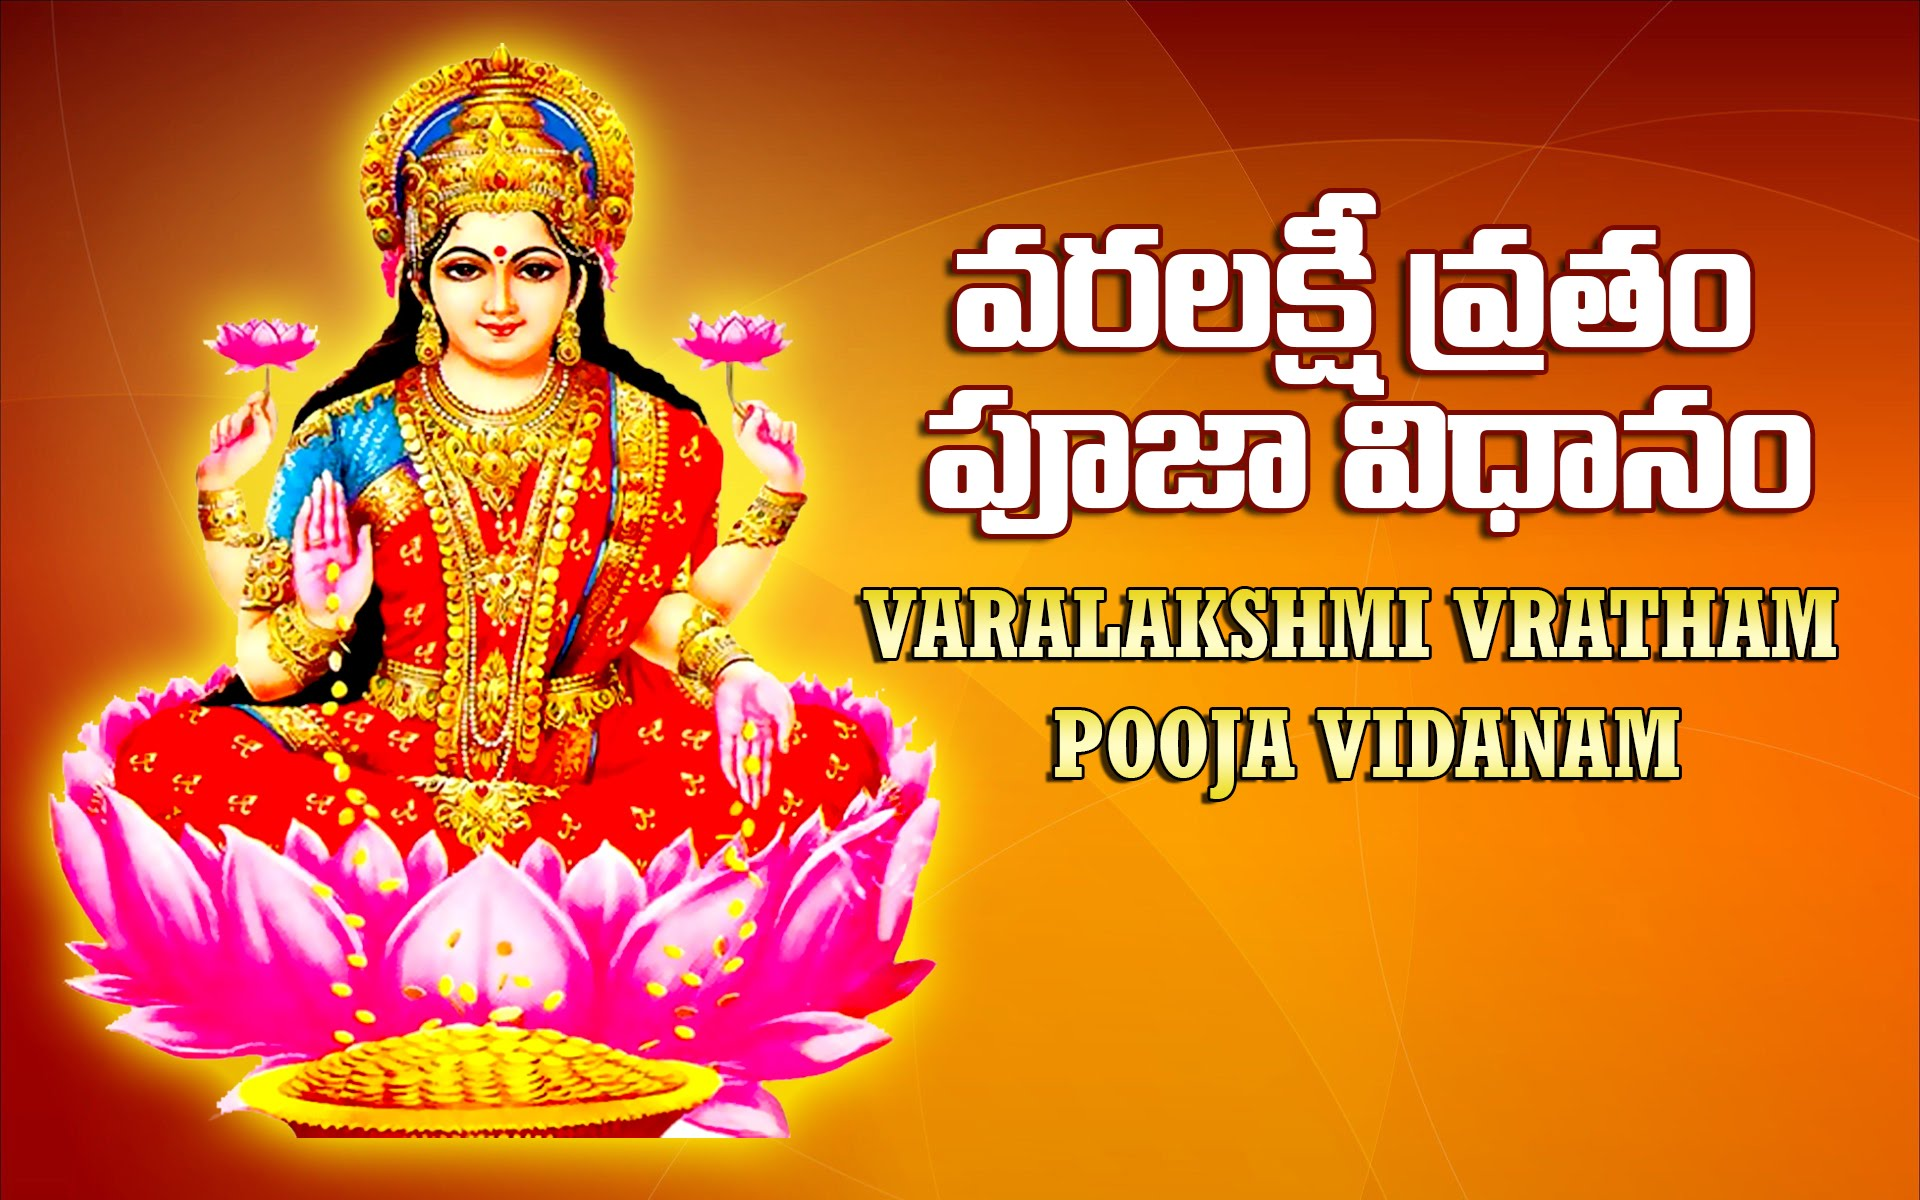 Happy Varalakshmi Vratham 2019 Quotes Wishes Messages SMS